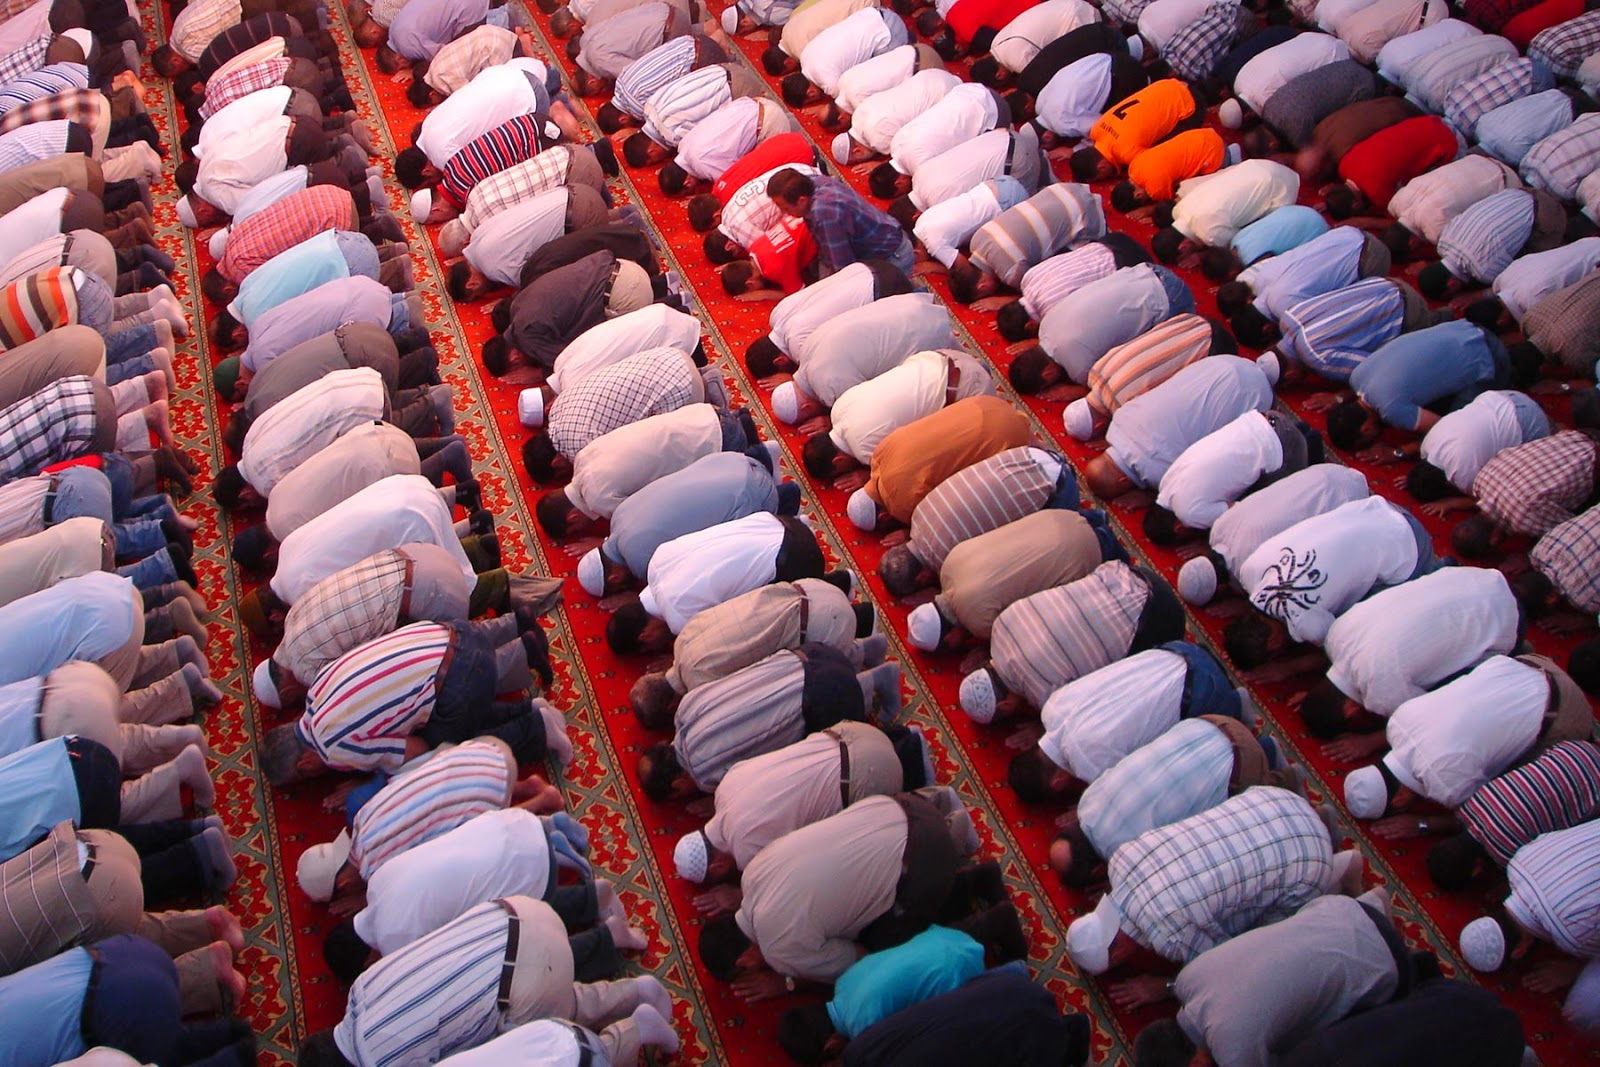 10 TIPS ON HOW TO CONCENTRATE DURING SALAT (PRAYERS)